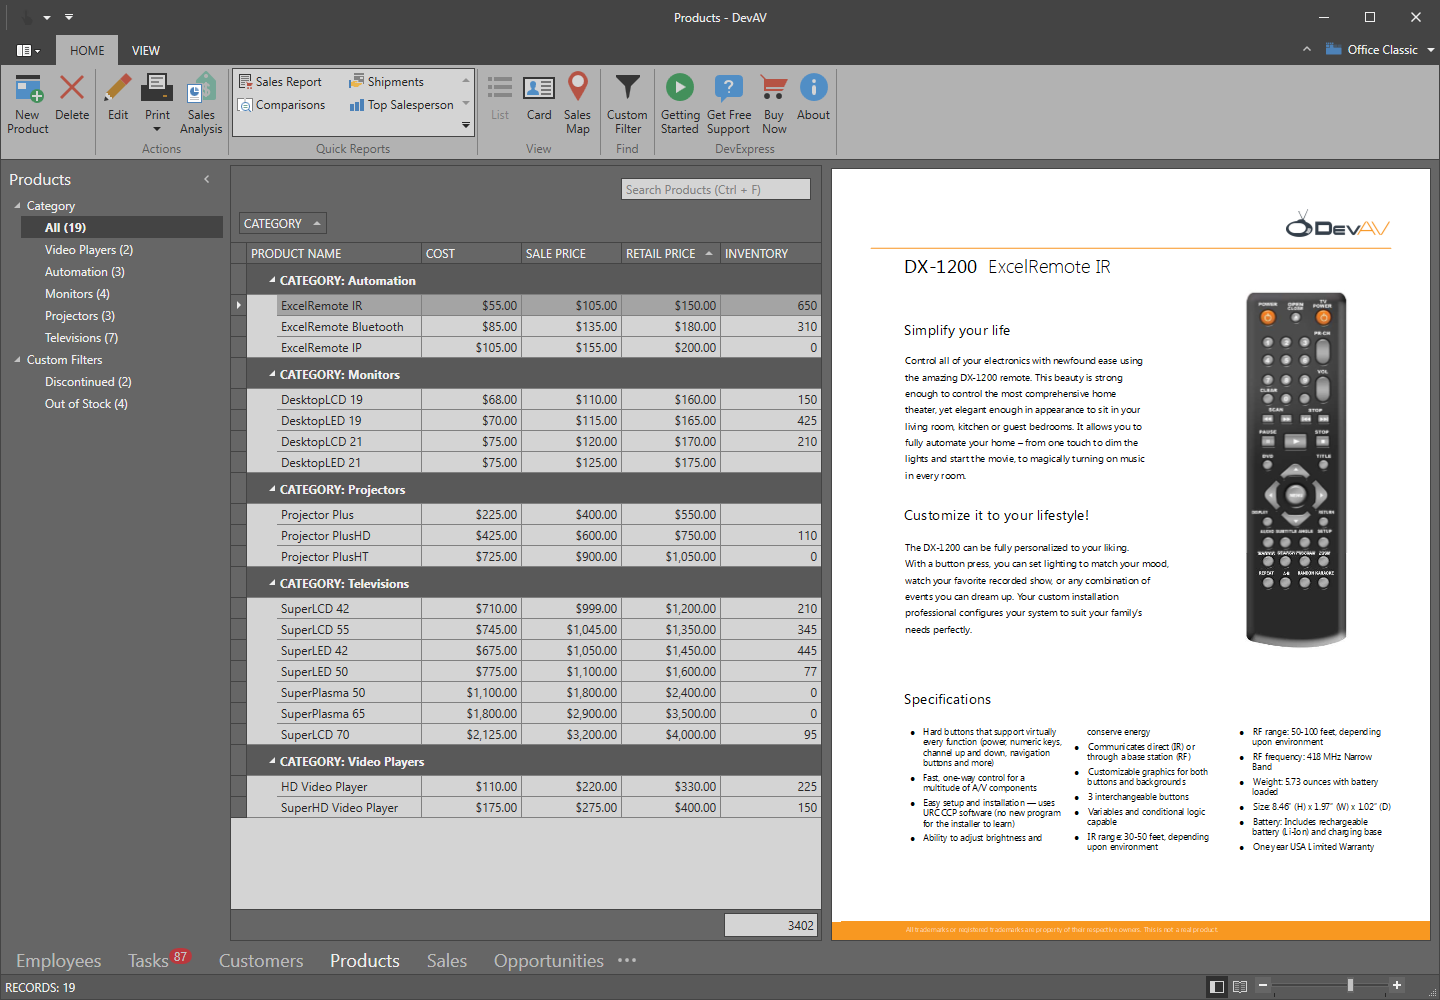 Office 2016 Dark Gray SE Theme